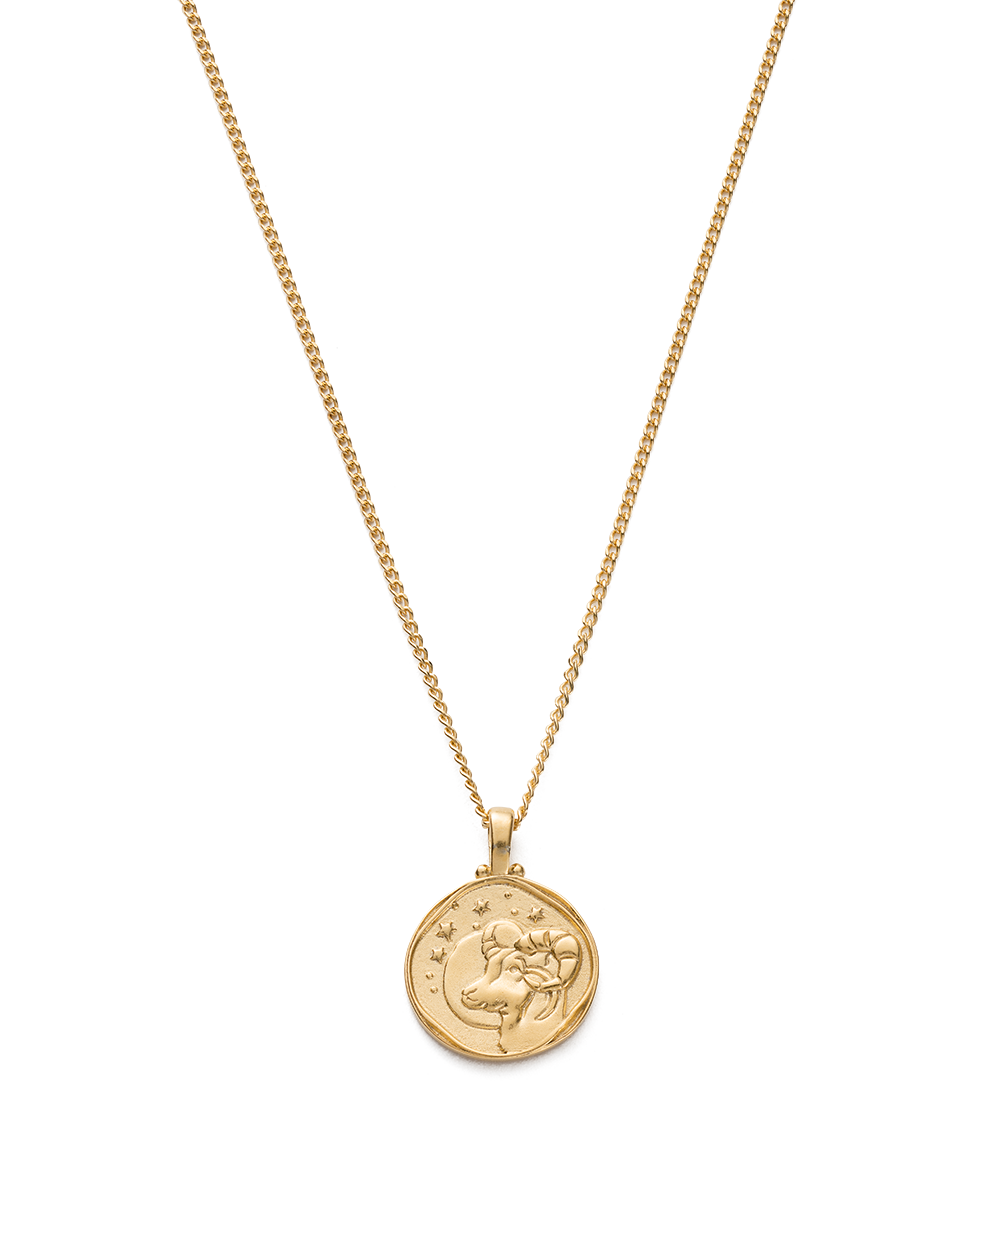 ARIES ZODIAC NECKLACE (18K-GOLD-VERMEIL)